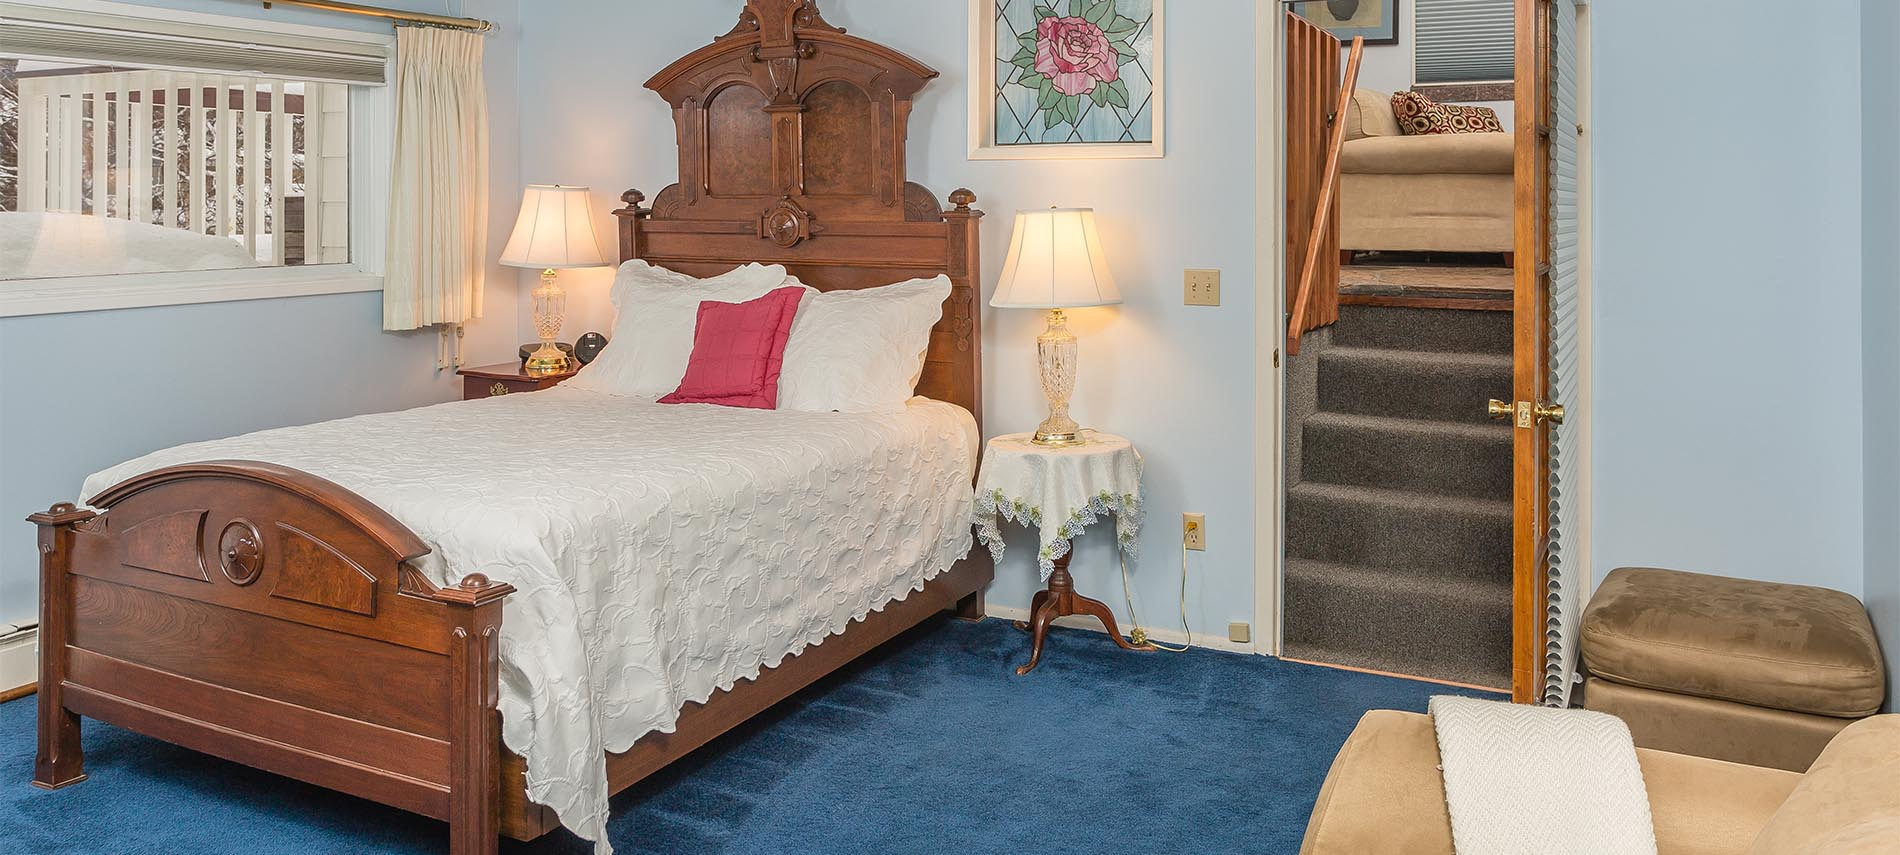 Antique queen bed with white spread; beige chair and ottoman; deep blue carpet; stairs leading to upper room with sofa